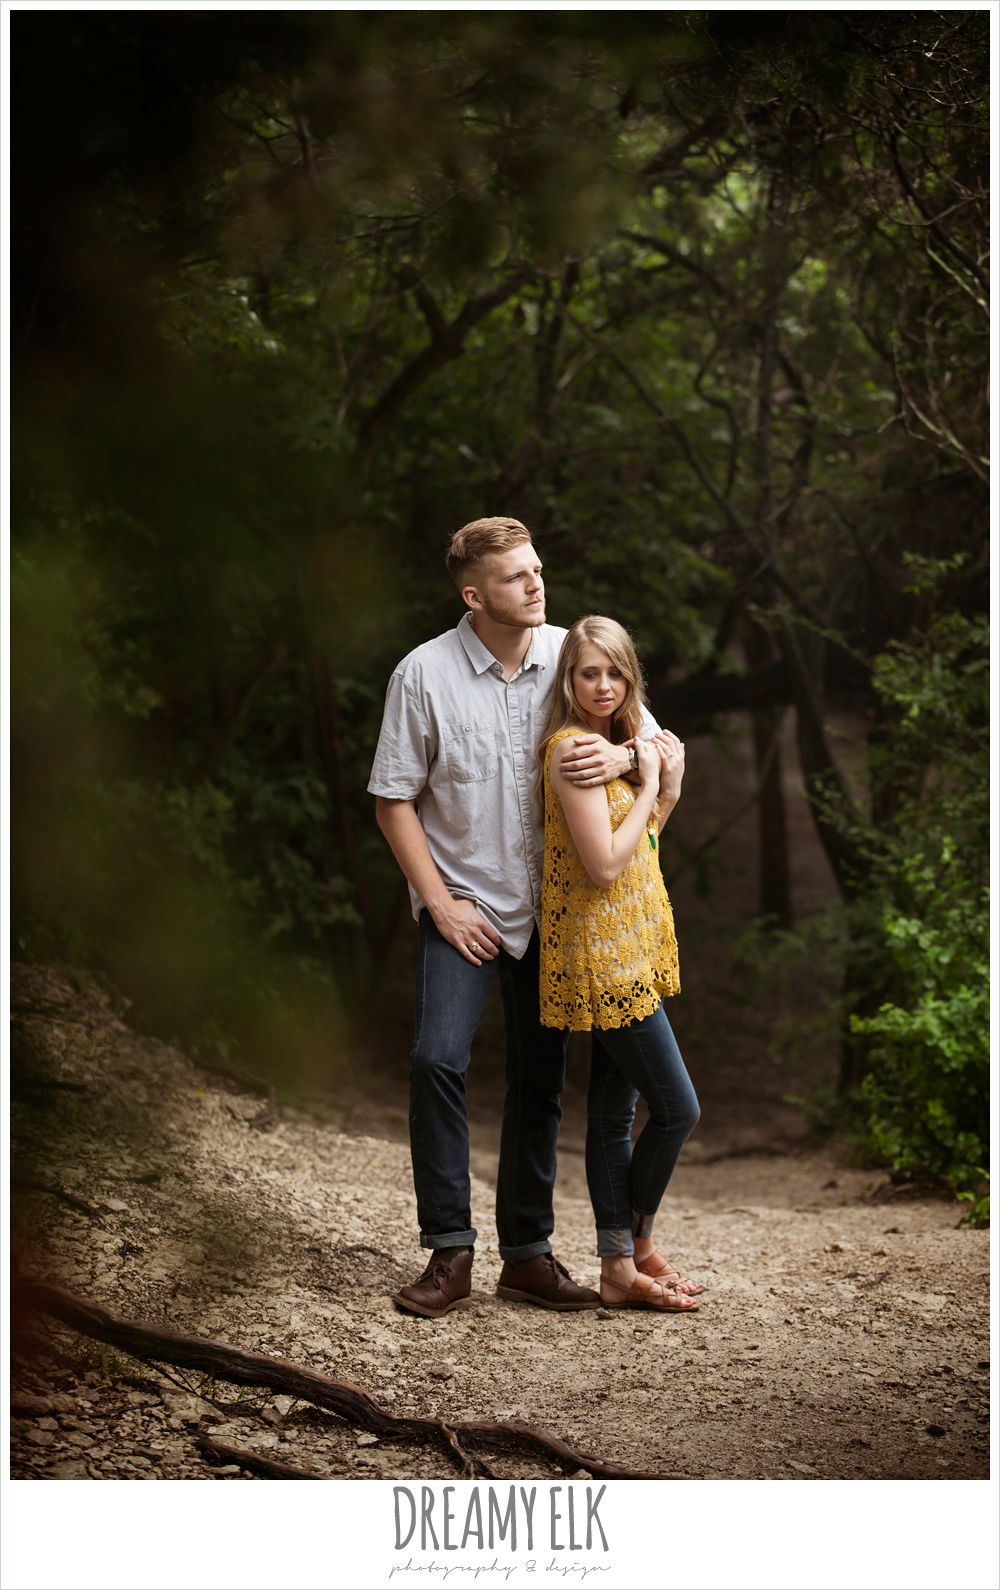 overcast engagement photo, walnut creek park, austin, texas {dreamy elk photography and design}